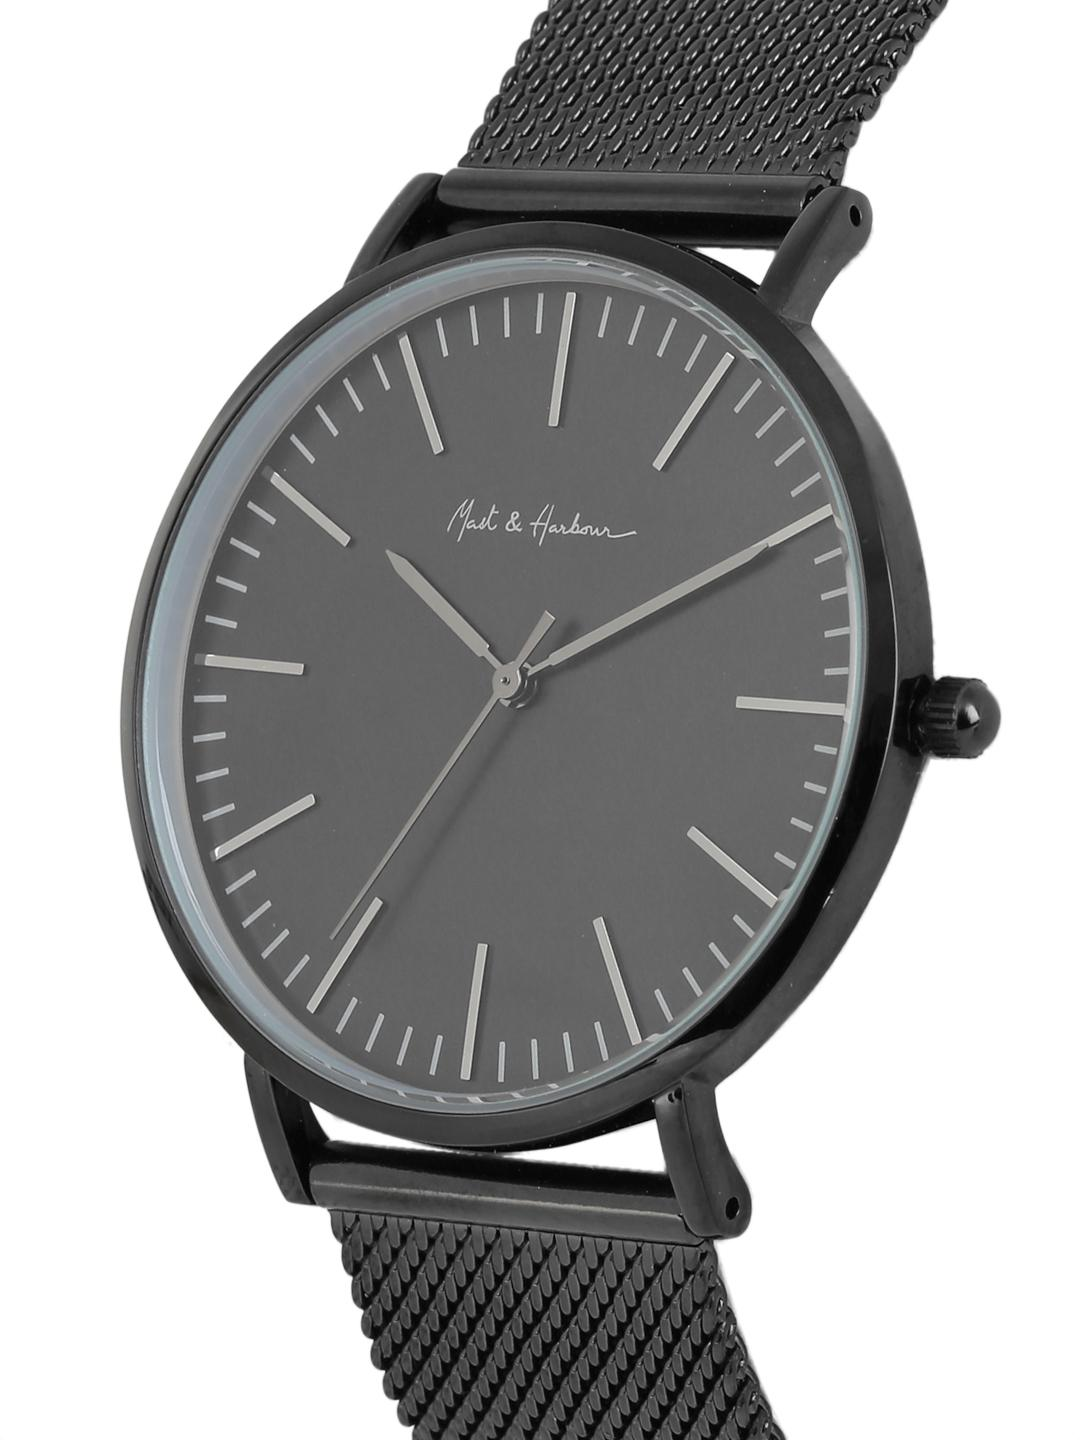 Mast & Harbour Unisex Black Analogue Watch MFB-PN-WTH-S9665G